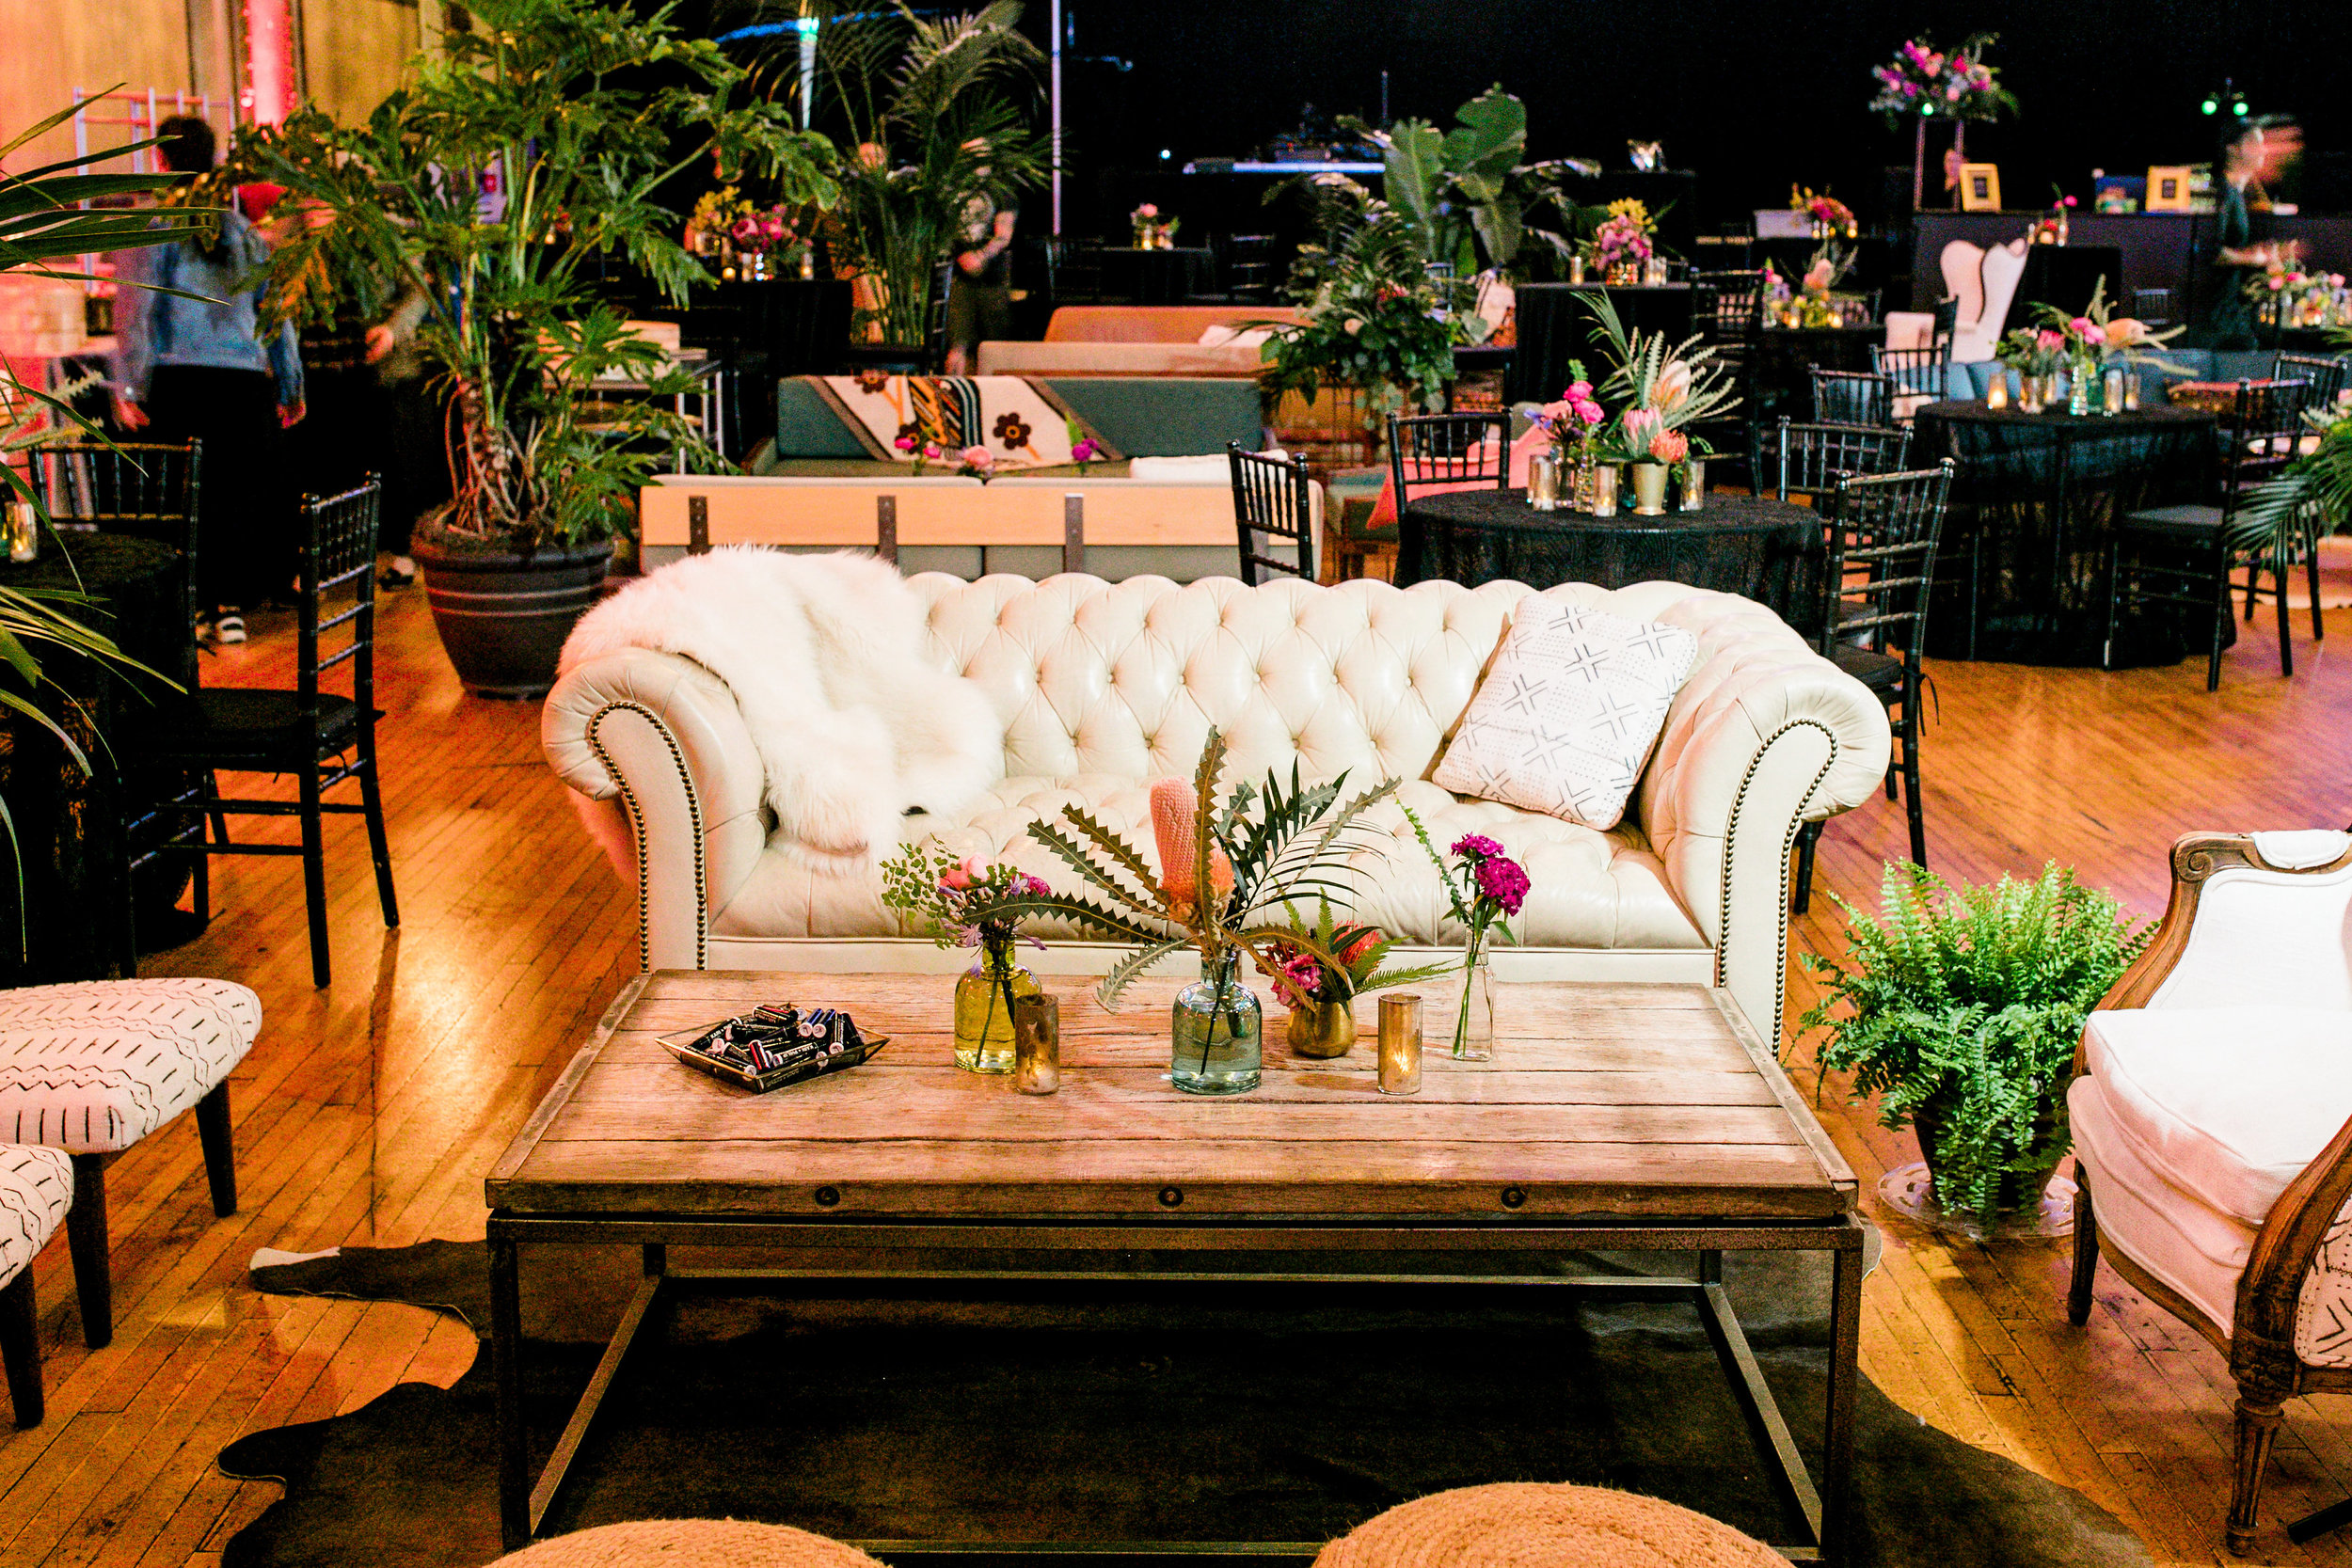 Vintage Lounge Furniture 4_ROQUE Events_Finch Photography.jpg